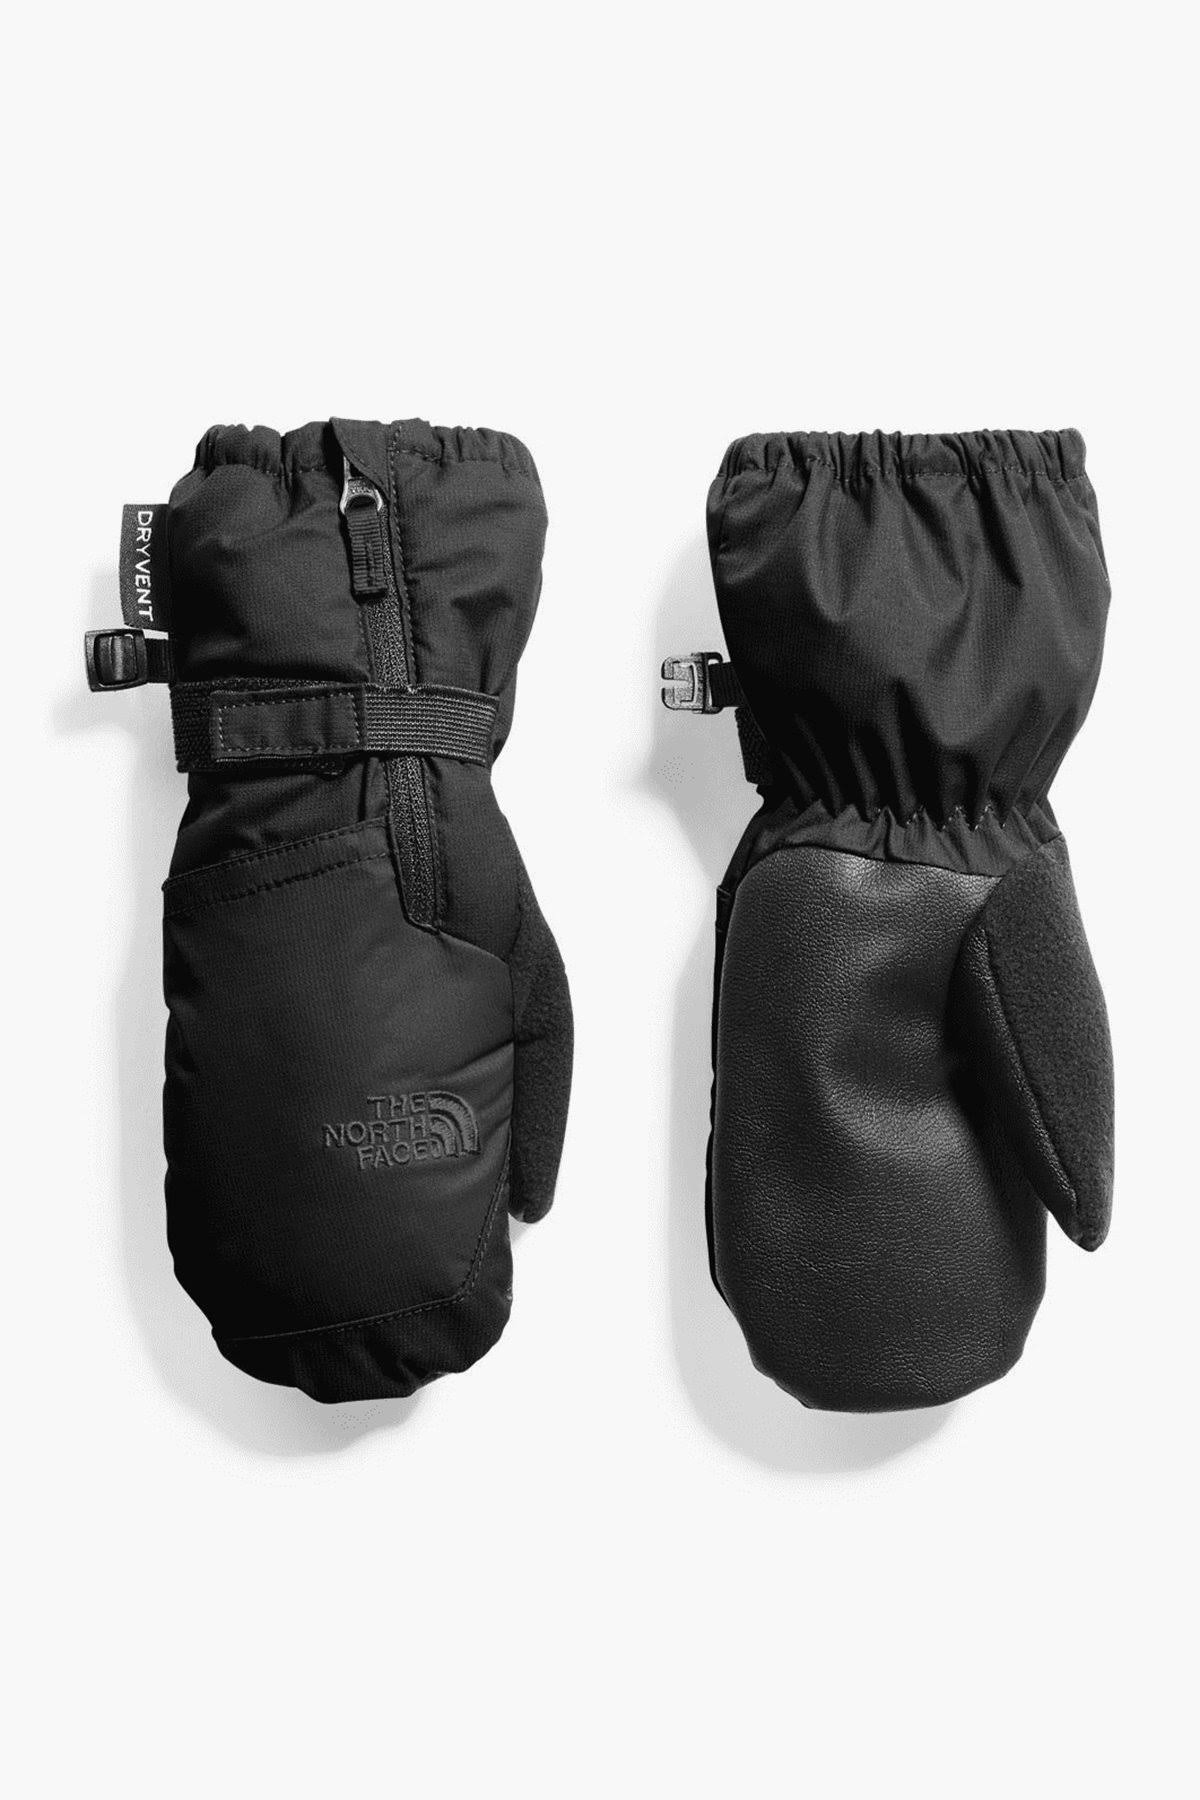 The North Face Toddler Mitt TNF Black 6T